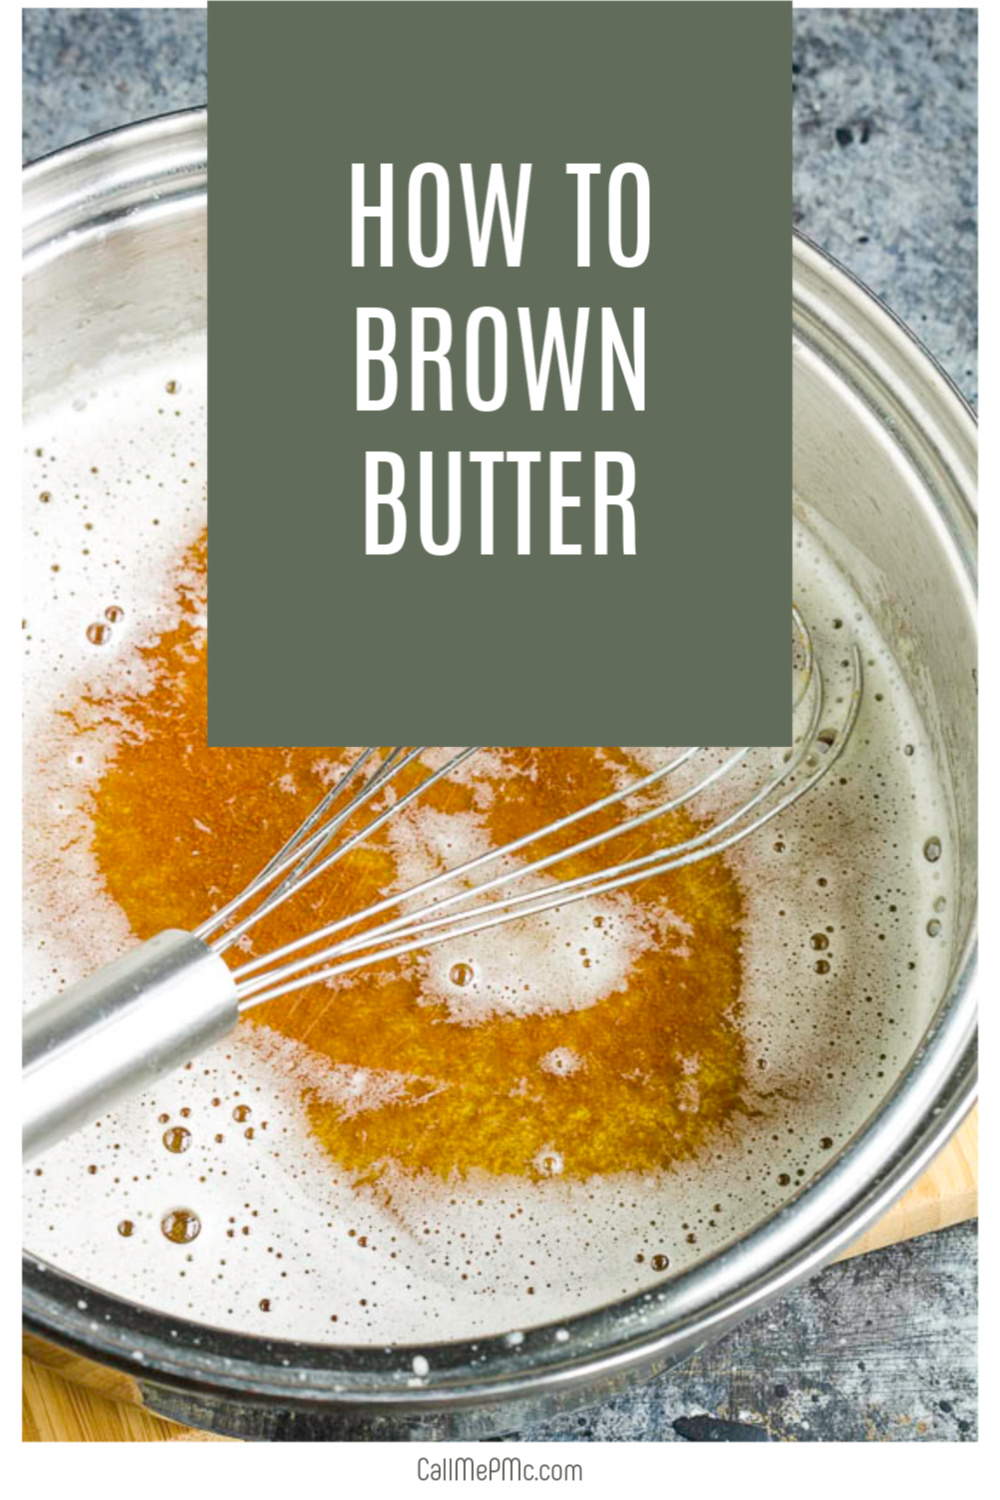 Best kitchen techniques: How to brown butter #howto #desserts #sauce #brownbutter #butter #cooking #cooking #glazze #recipes